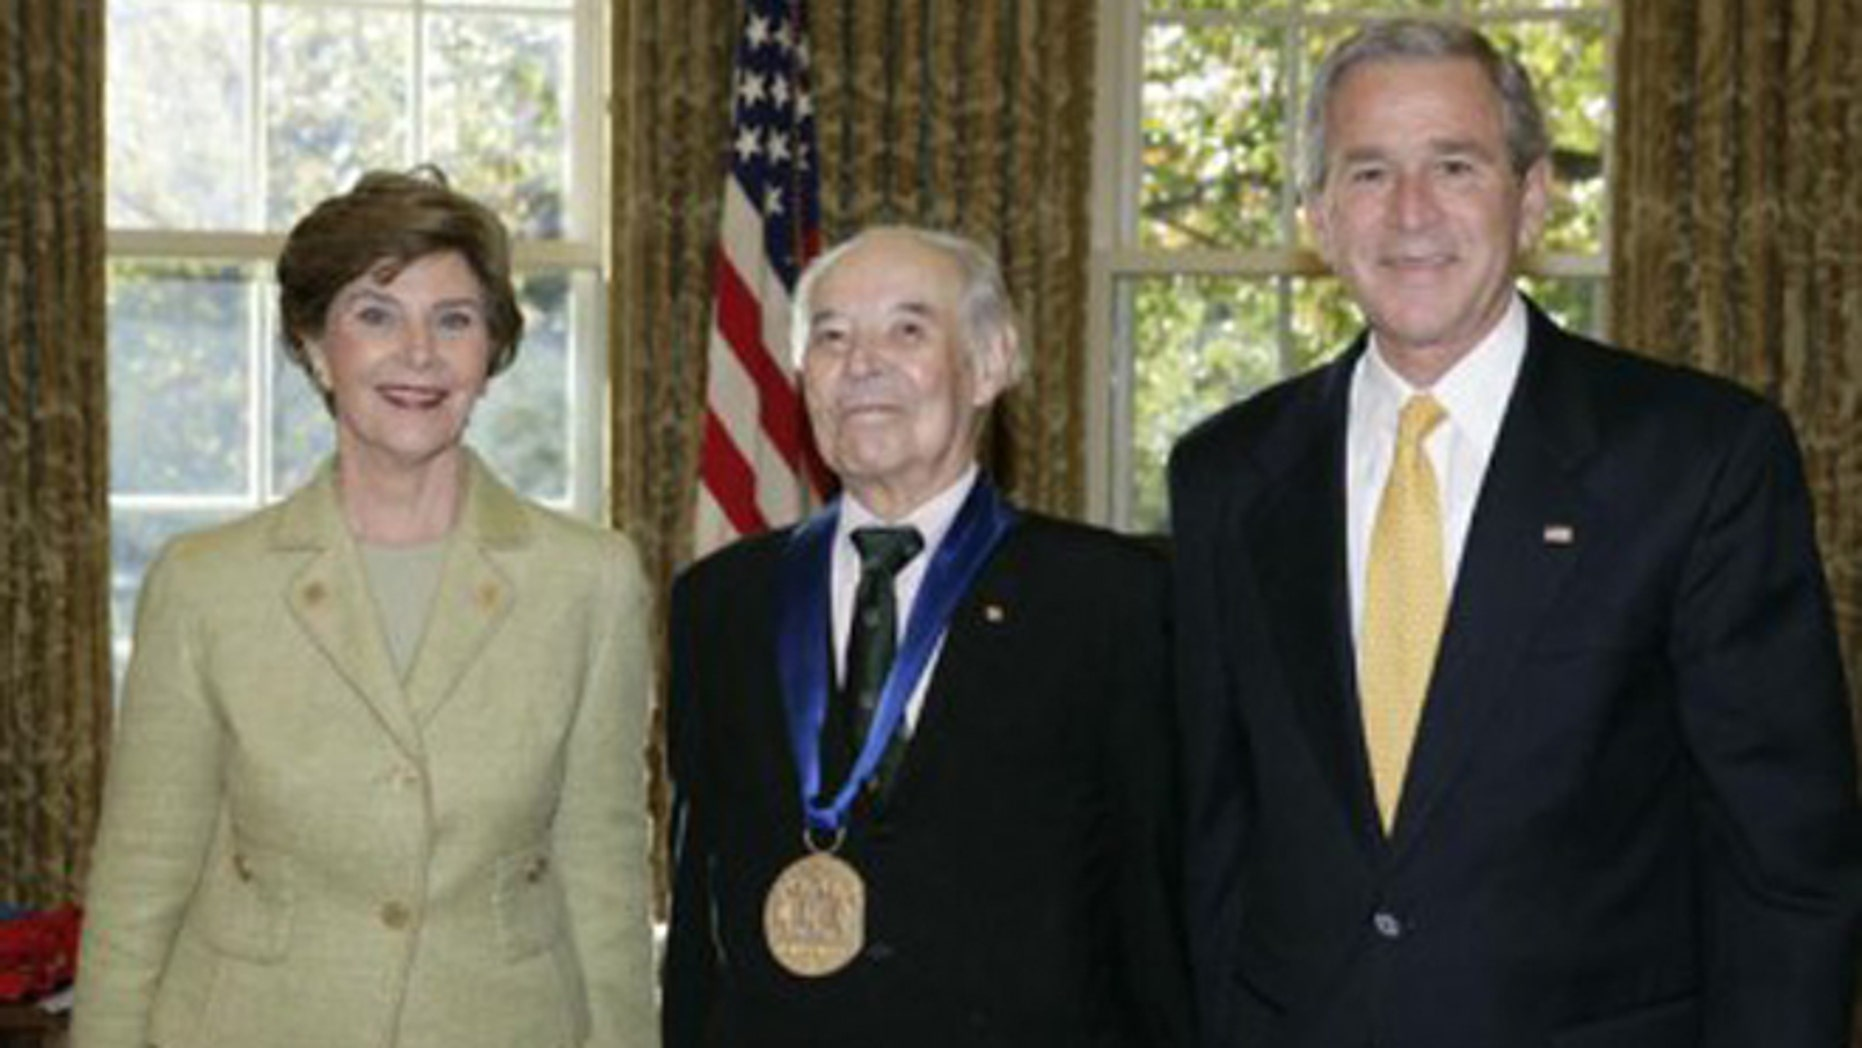 Gregory Rabassa with President George W. Bush and the First Lady, Laura Bush, receiving the 2006 National Medal of Arts.